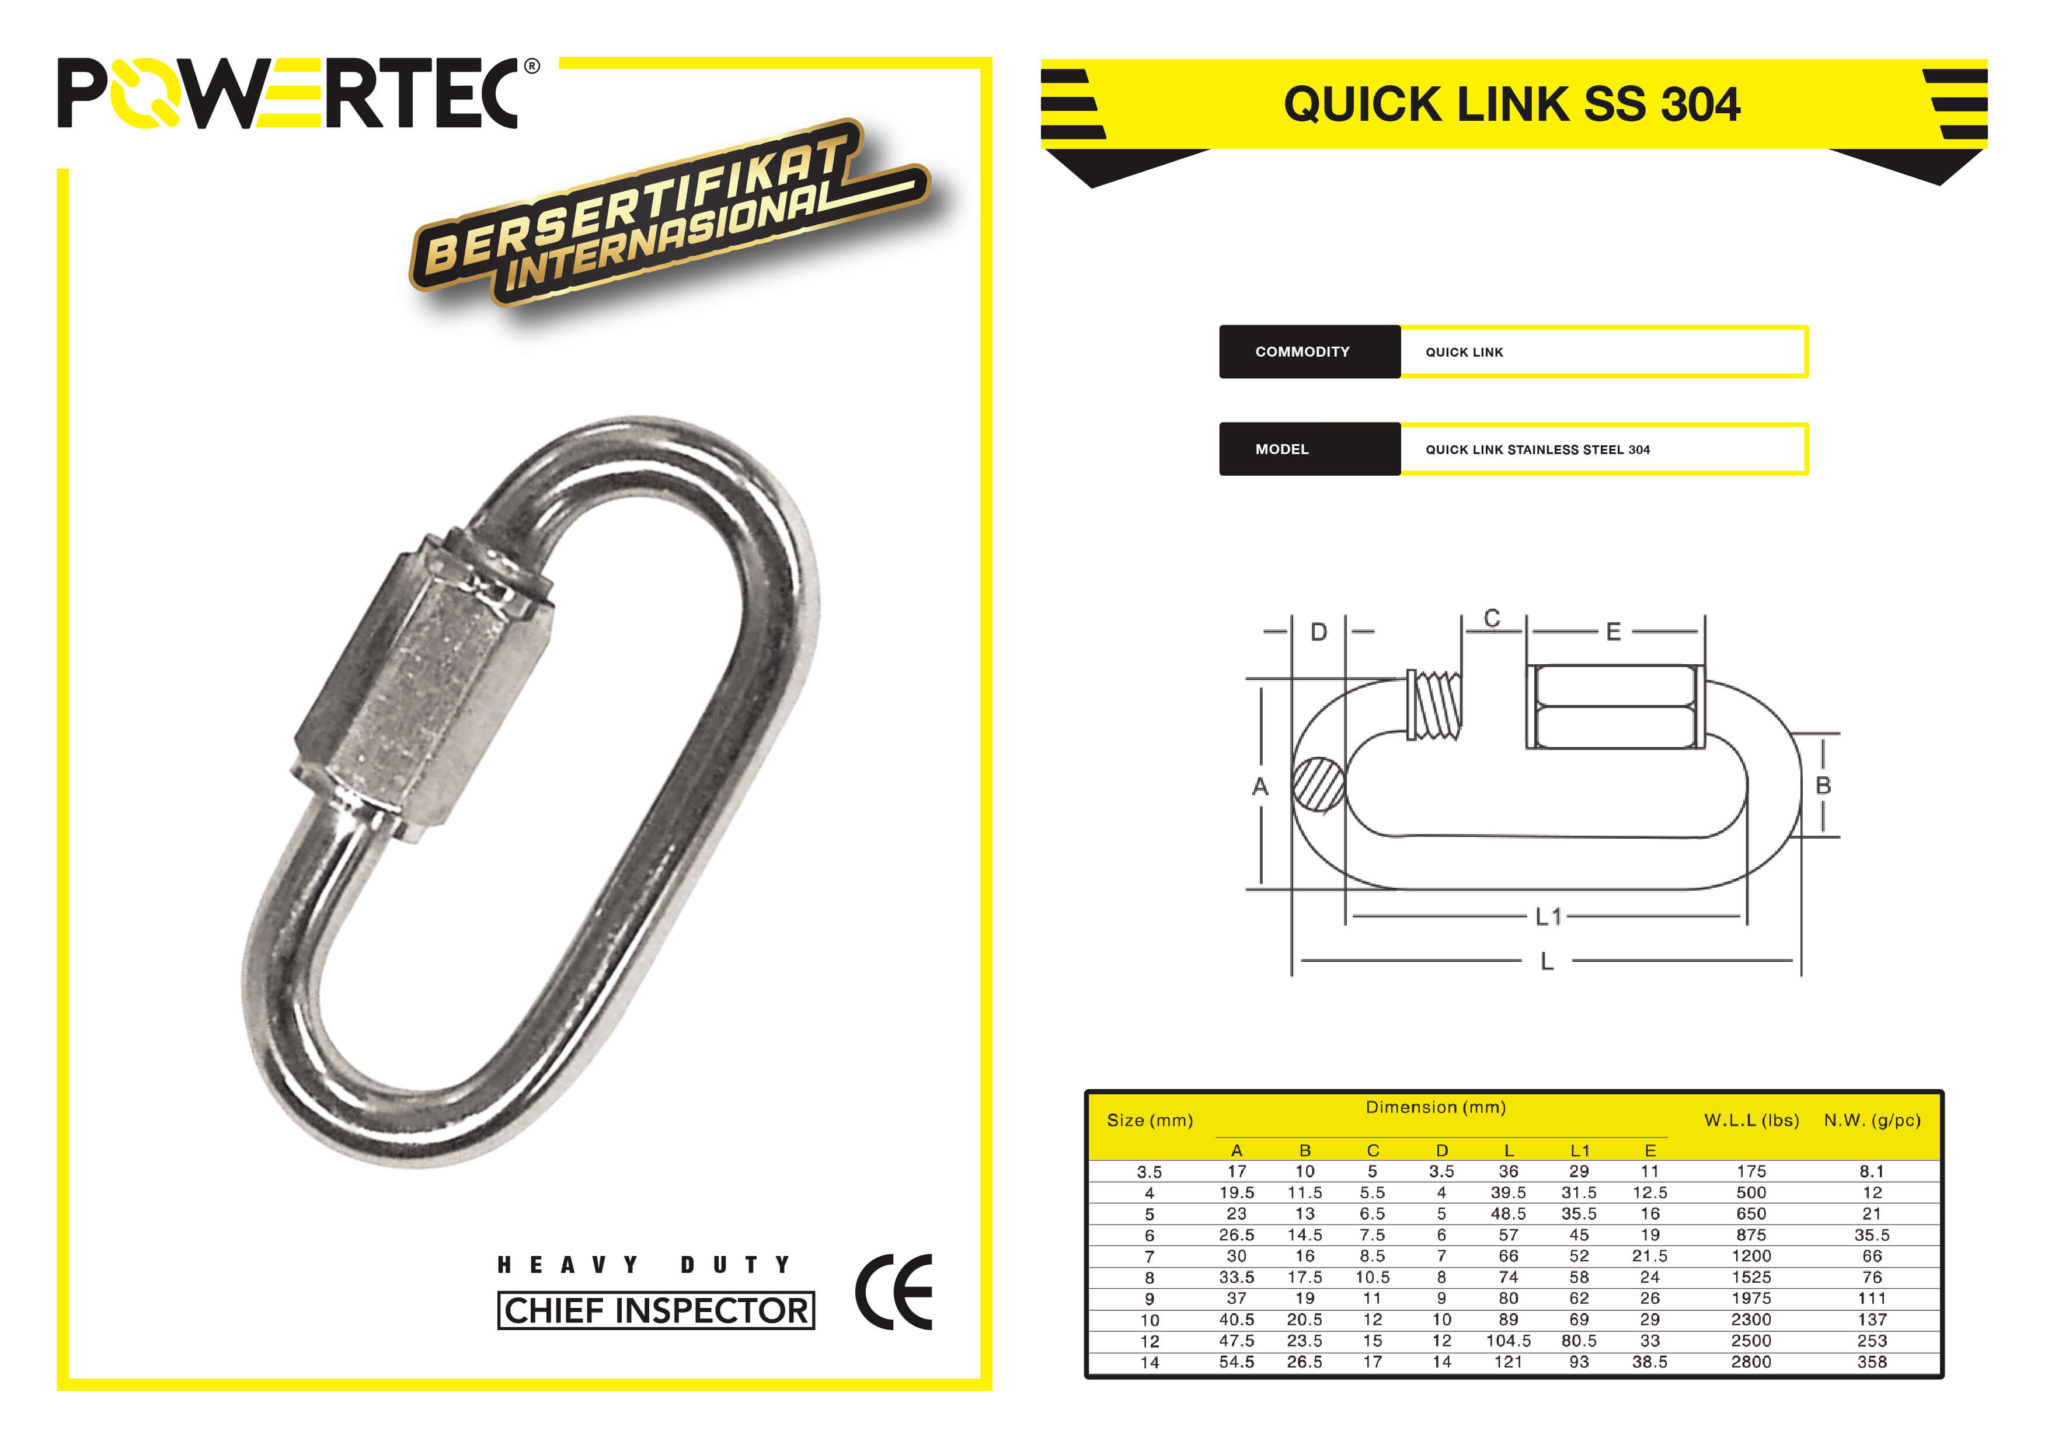 POWERTEC QUICK LINK SS 304 BROCHURE